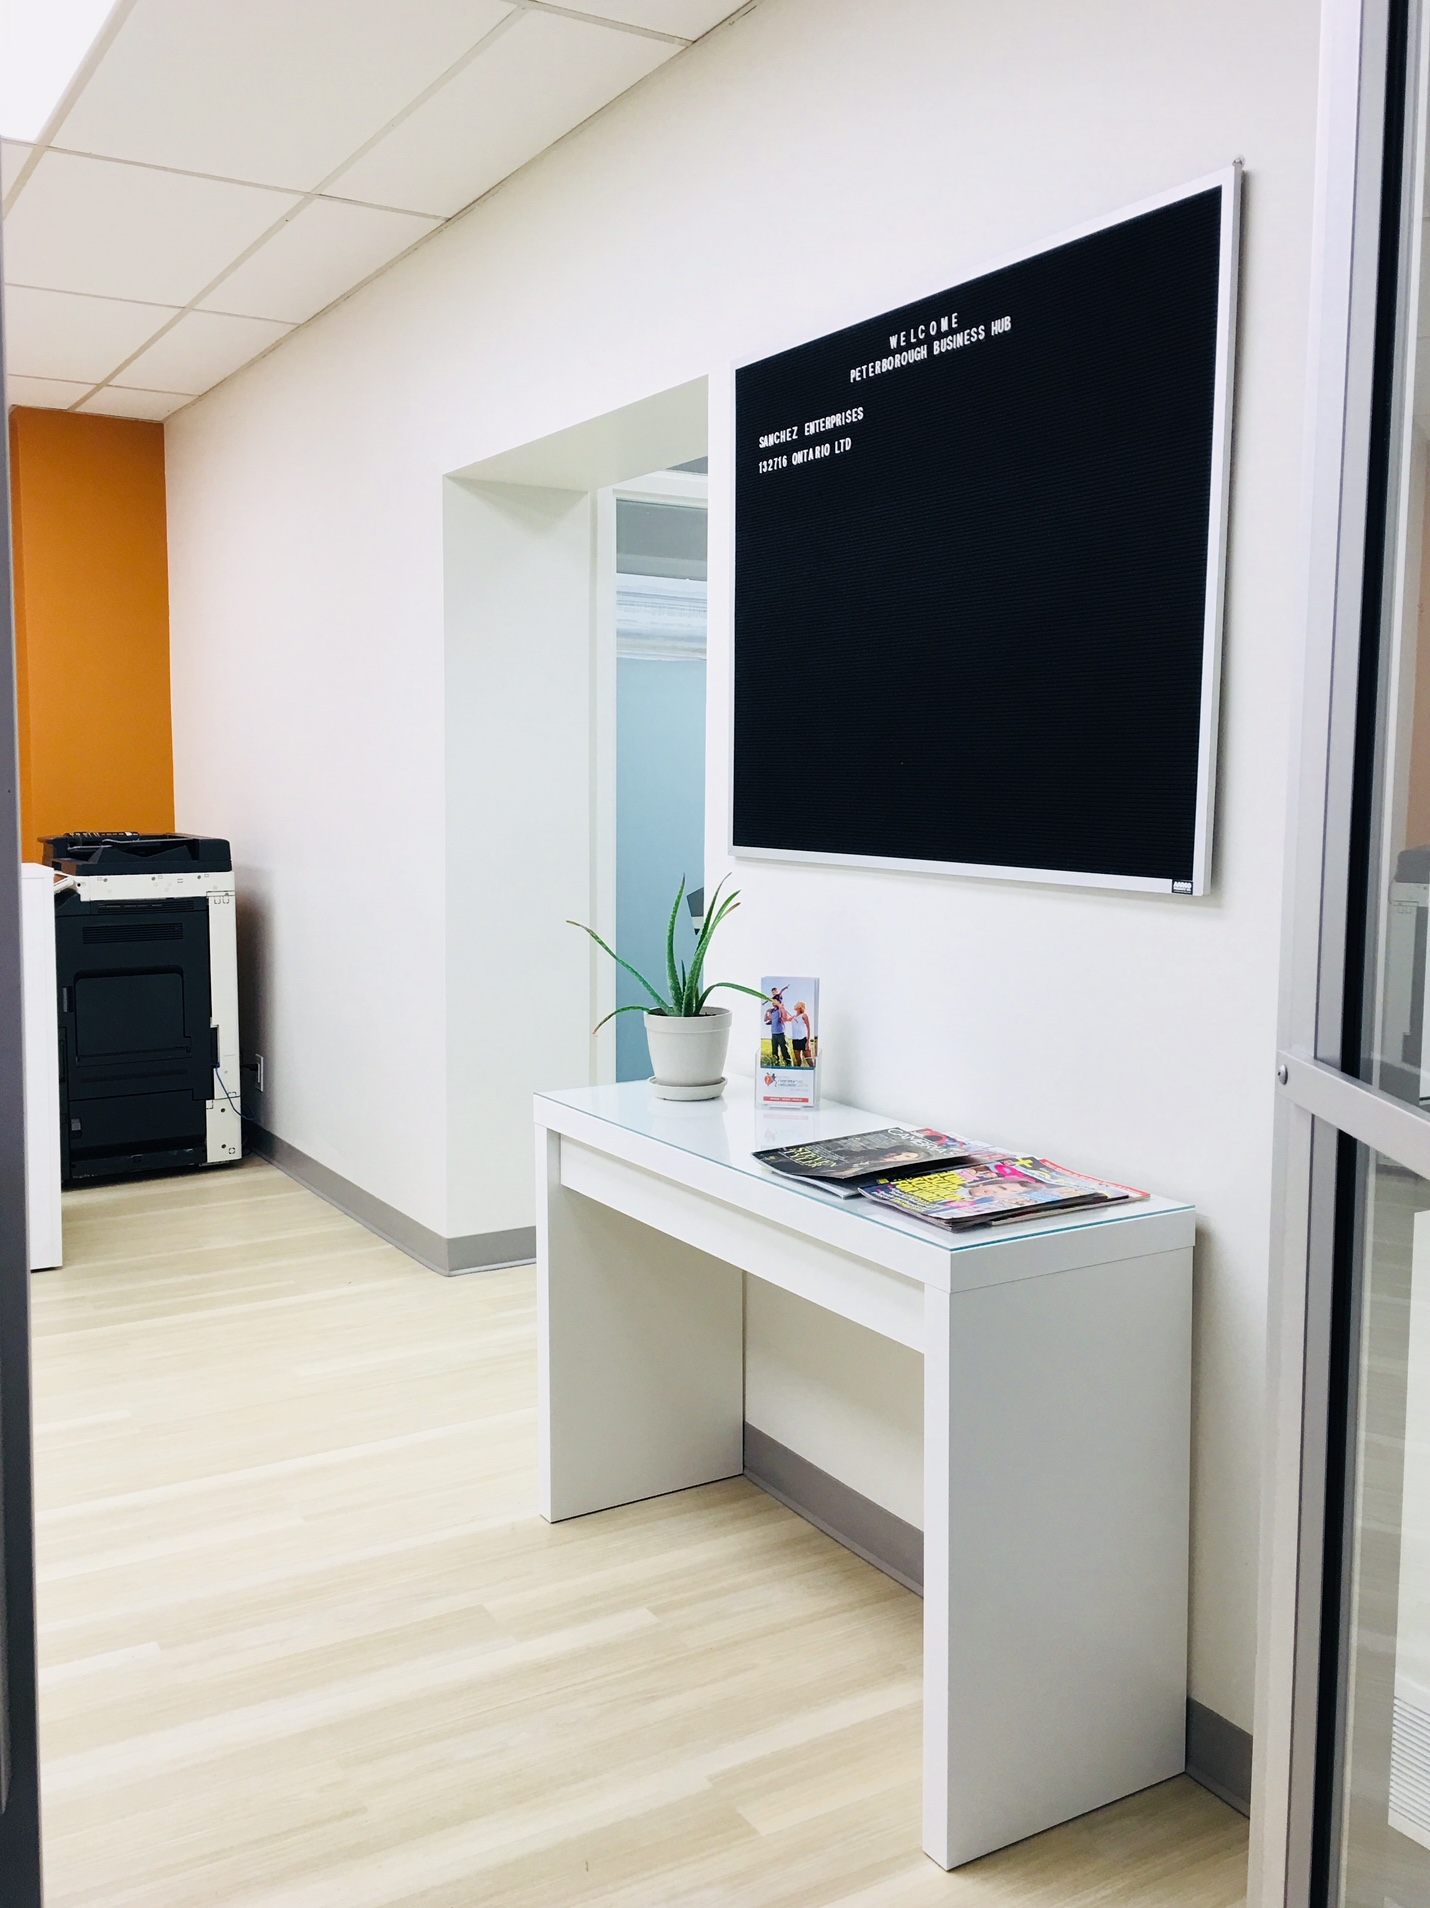 Directory in reception